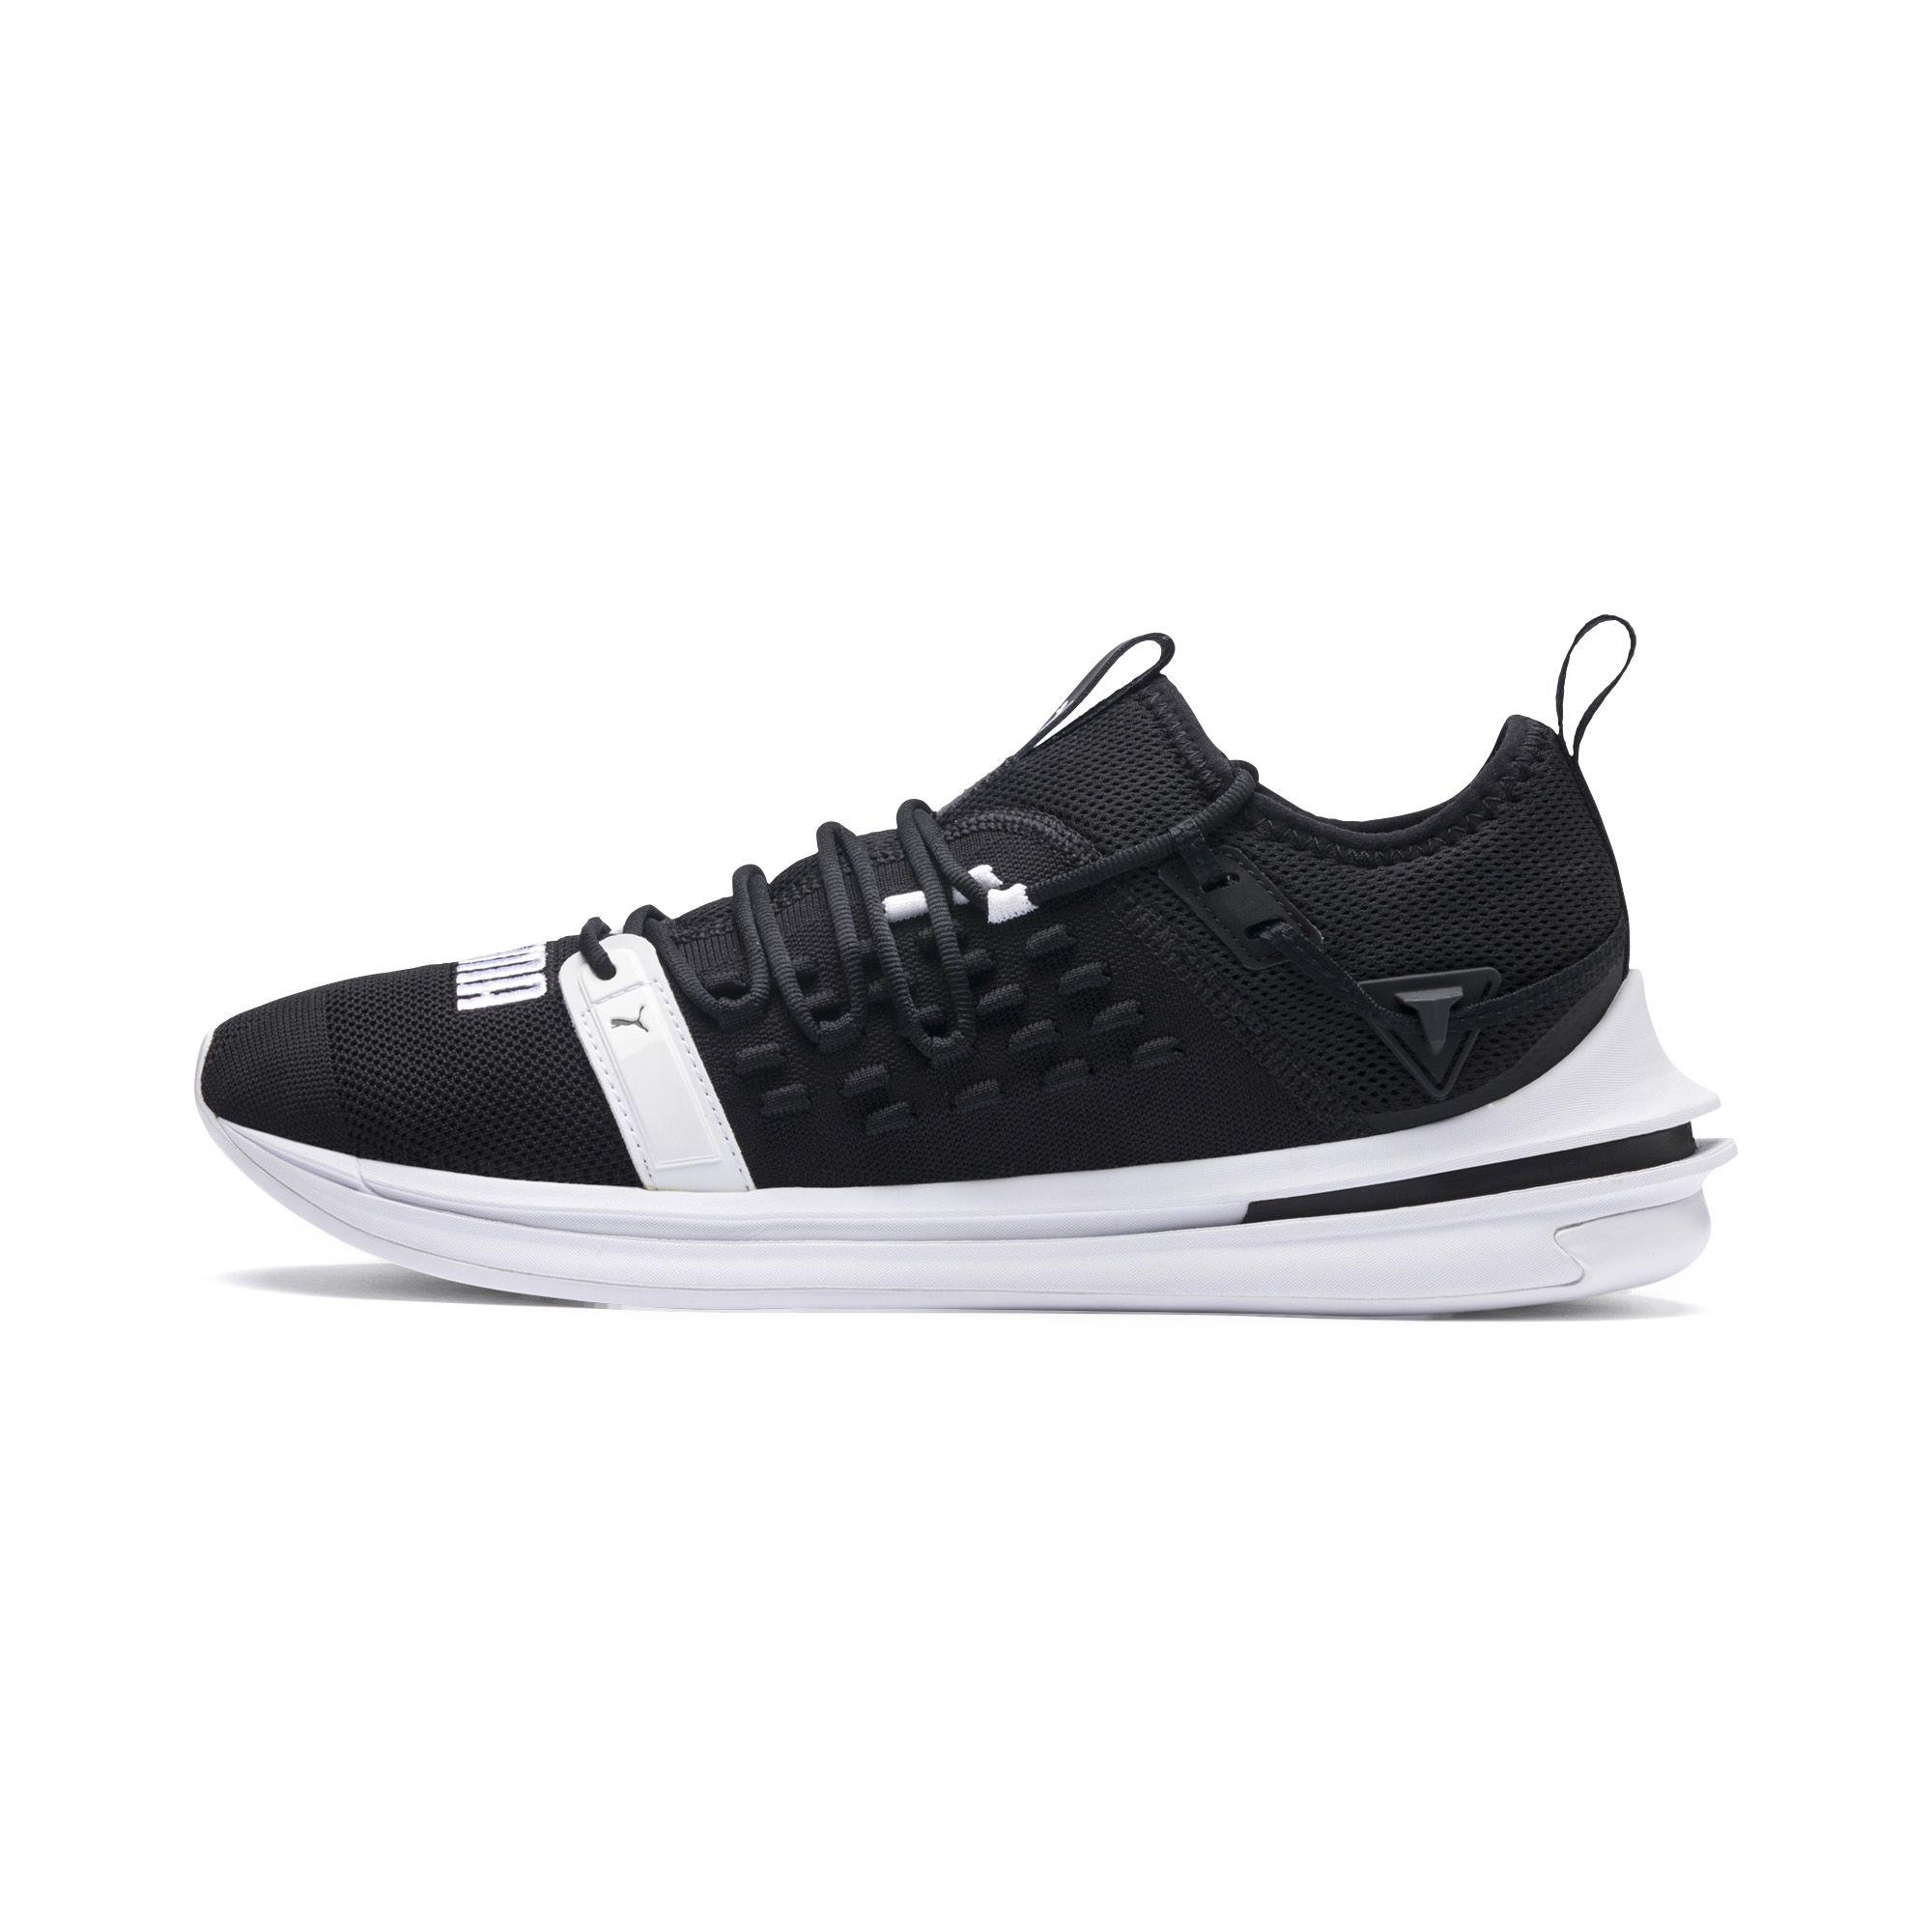 Lyst - PUMA Ignite Limitless Sr Fusefit Running Shoes in Black for Men 289038acf